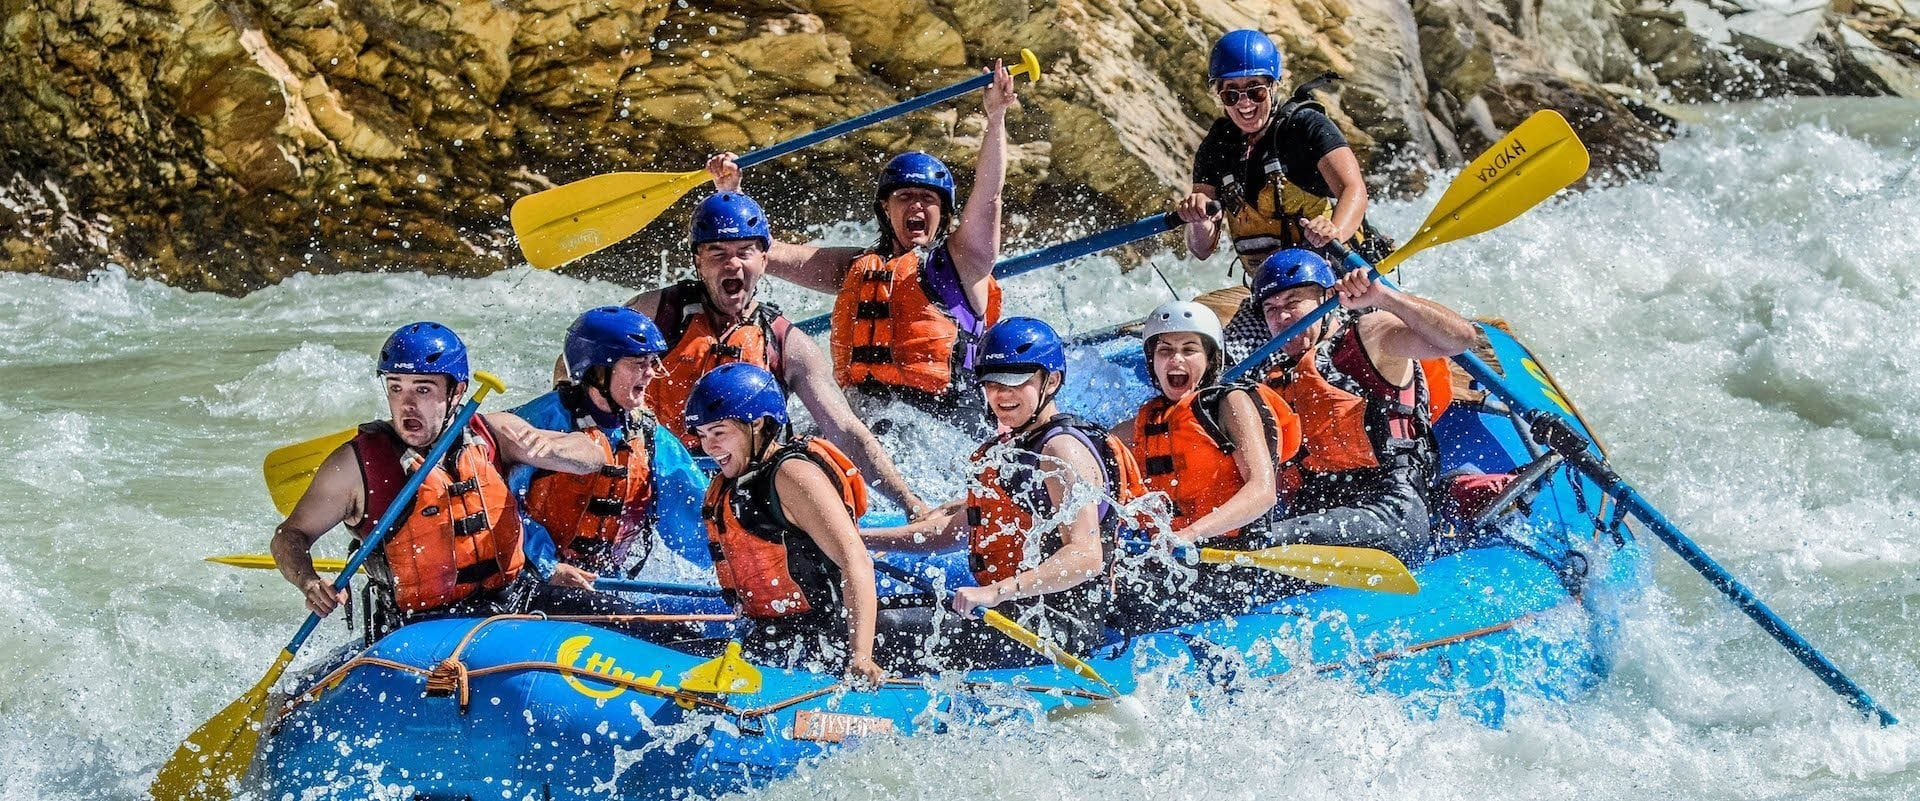 Kicking Horse River Classic Whitewater Rafting